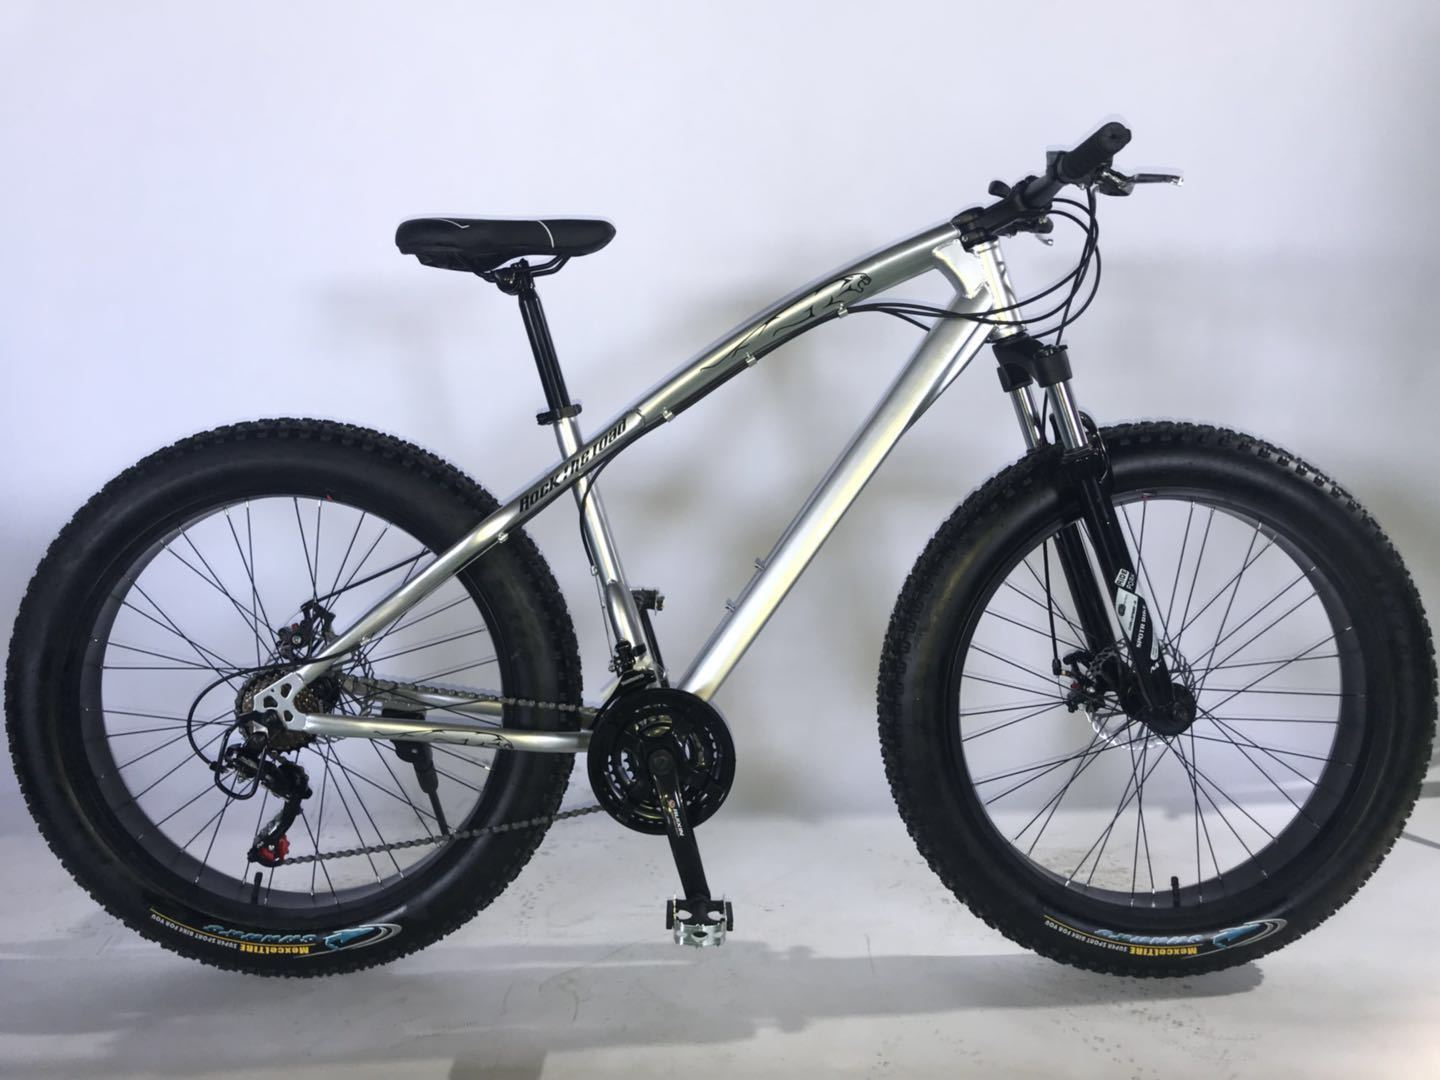 Fat Bloke Travels Used Fat Bikes For Sale On Ebay Uk November 2018